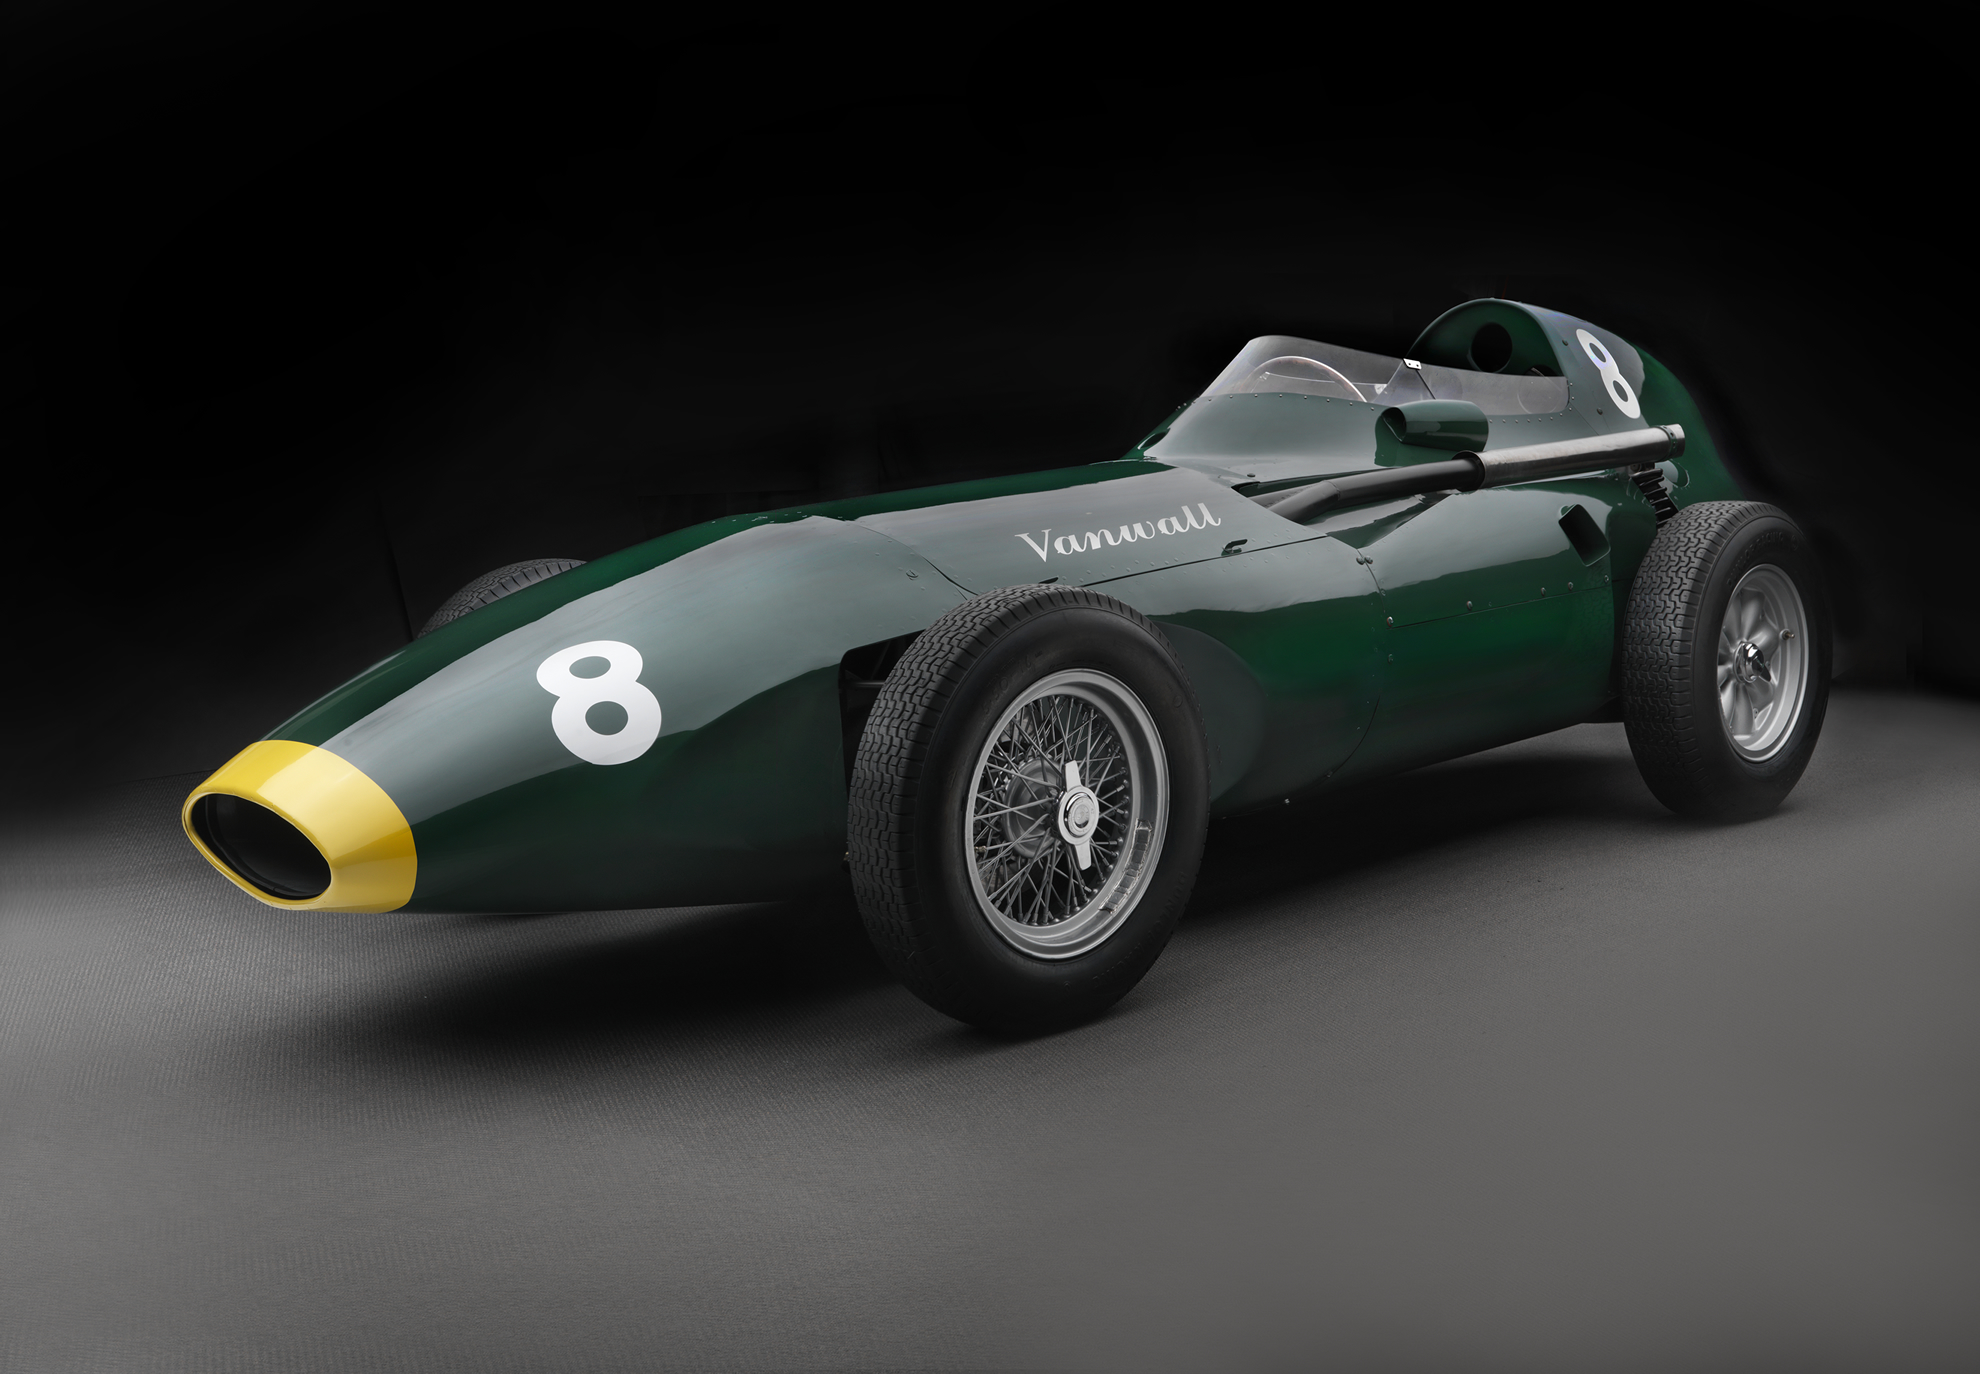 Vanwall returns with a £2million grand prix continuation car